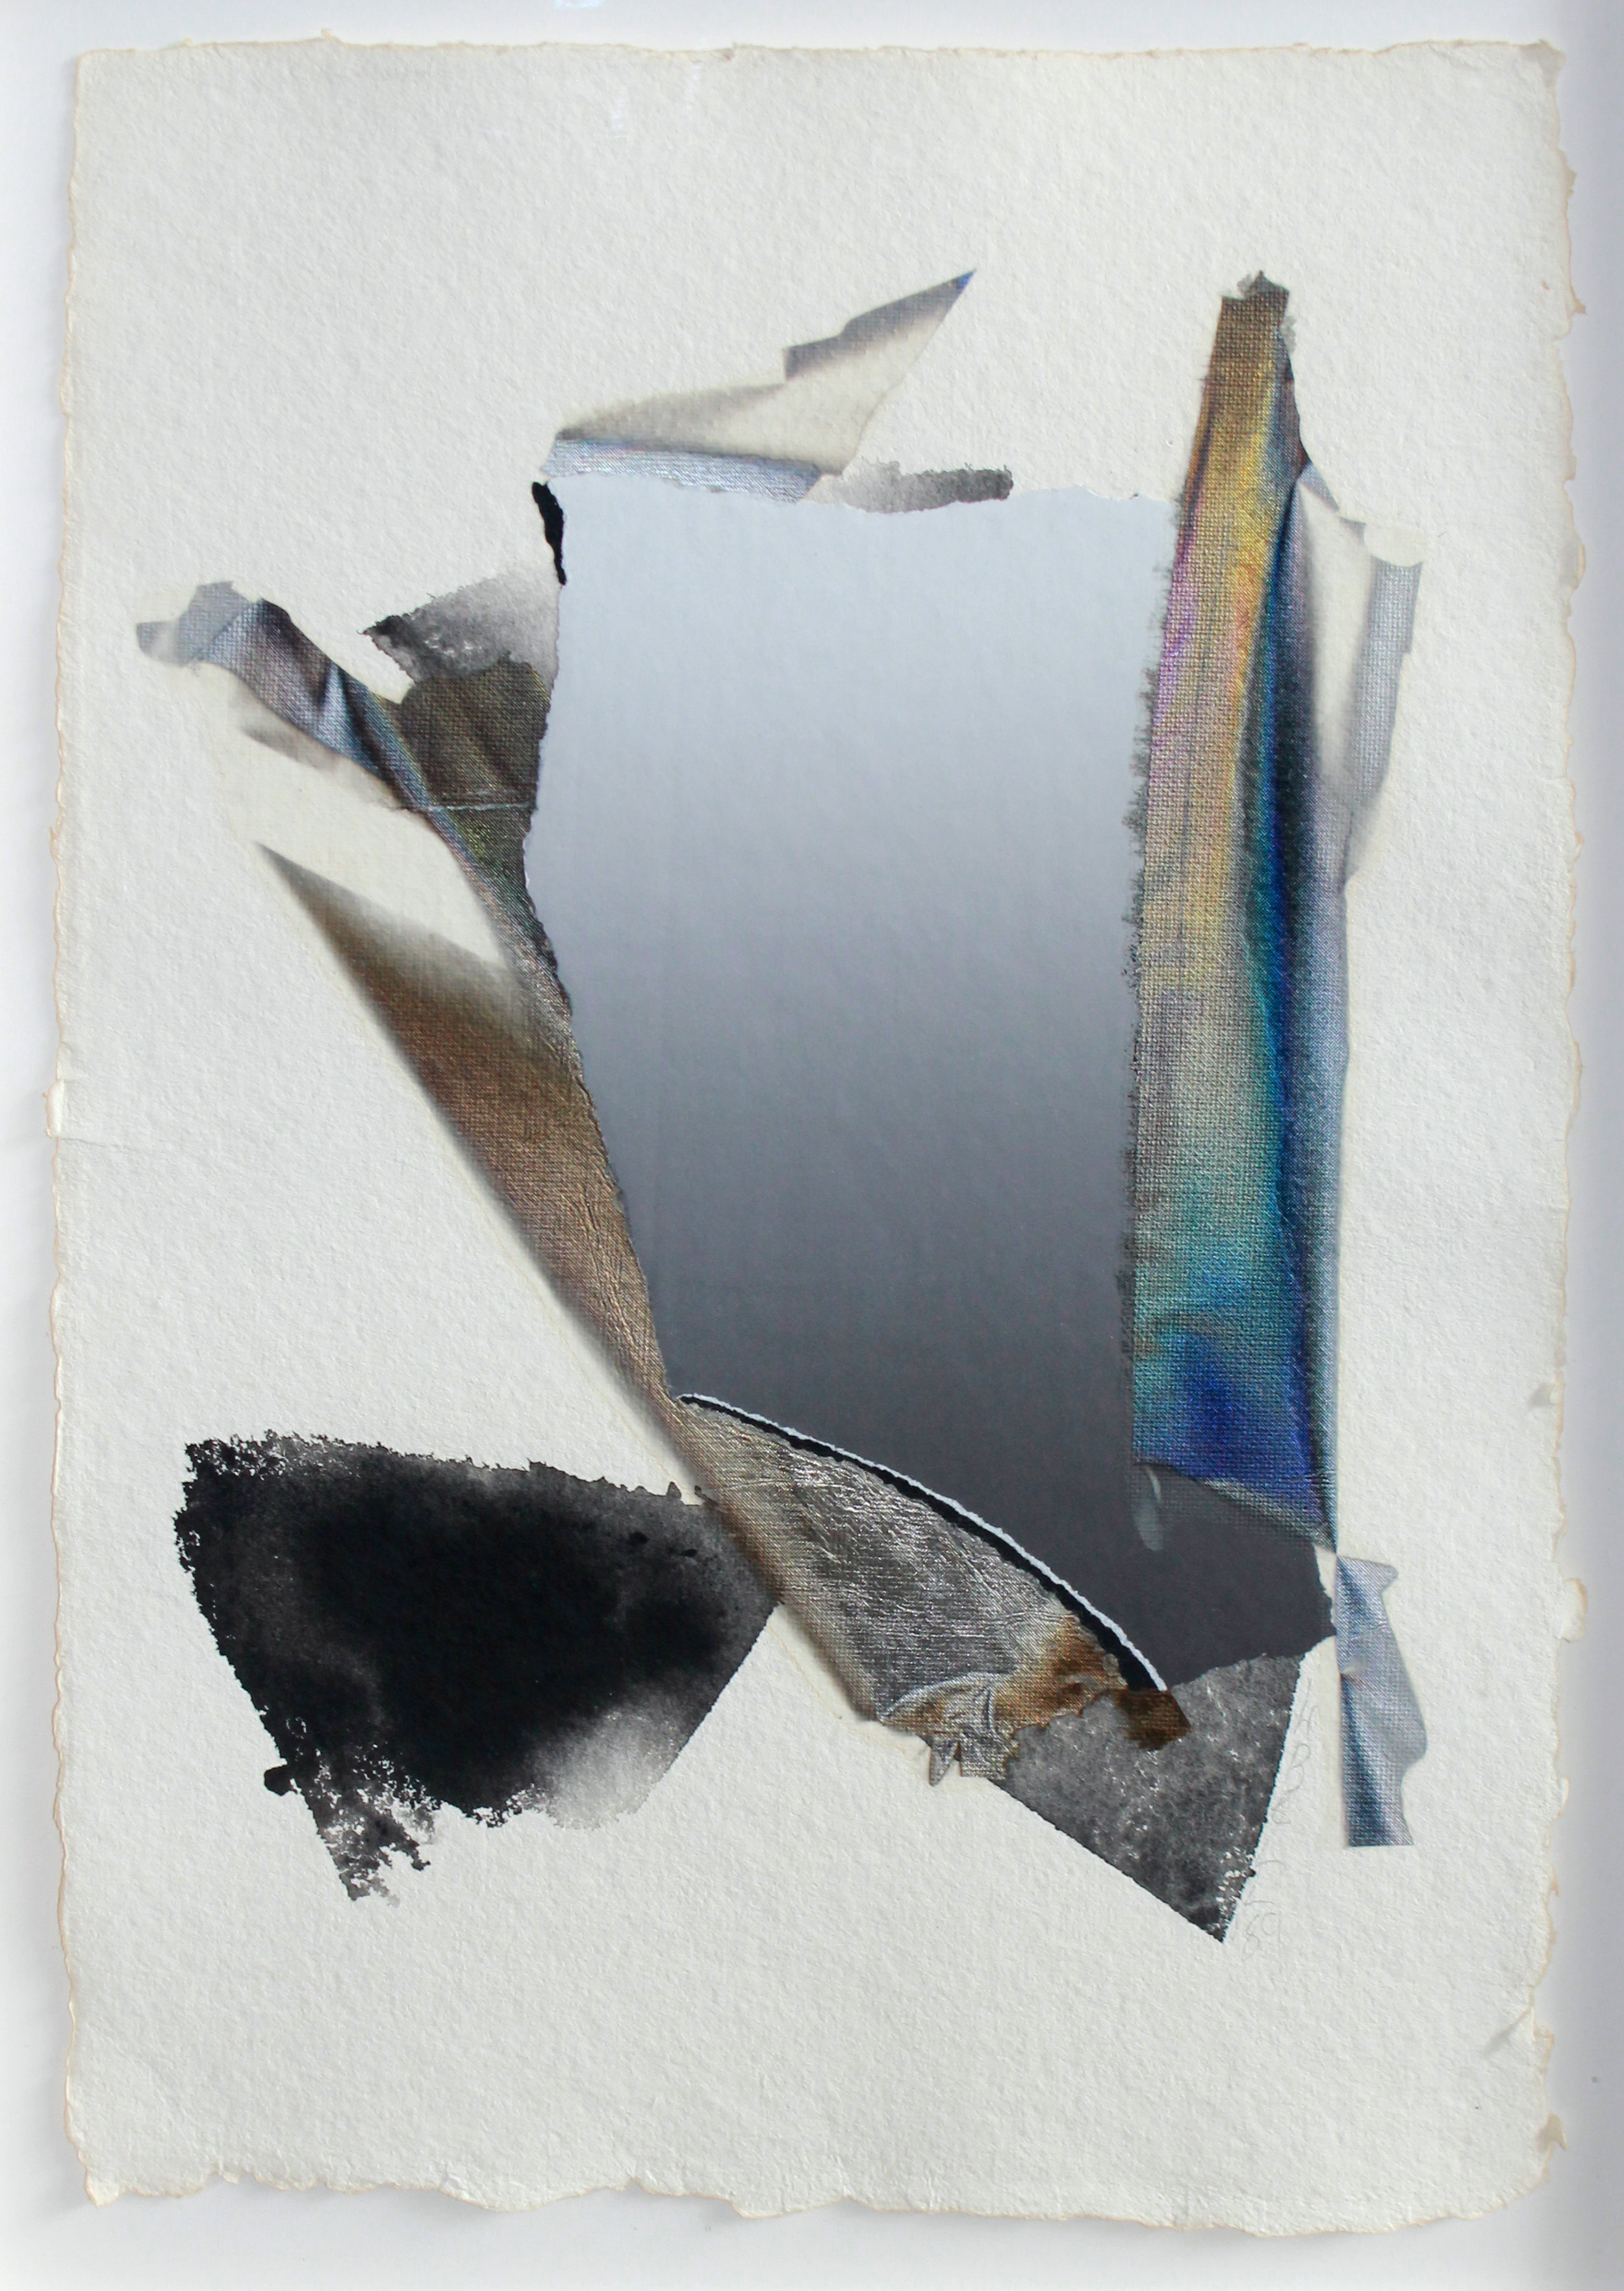 Larry Bell (Born 1939)  Untitled, 1989 Vaporized metals on paper with mixed media collage on paper Signed and dated in pencil on recto Sheet: 18 x 12.25 inches; Framed: 20.5 x 15 inches Provenance: The Estate of Ms. Gaby Stuart/Primus-Stewart Gallery, Los Angeles, CA Estimate: $3,000/$5,000